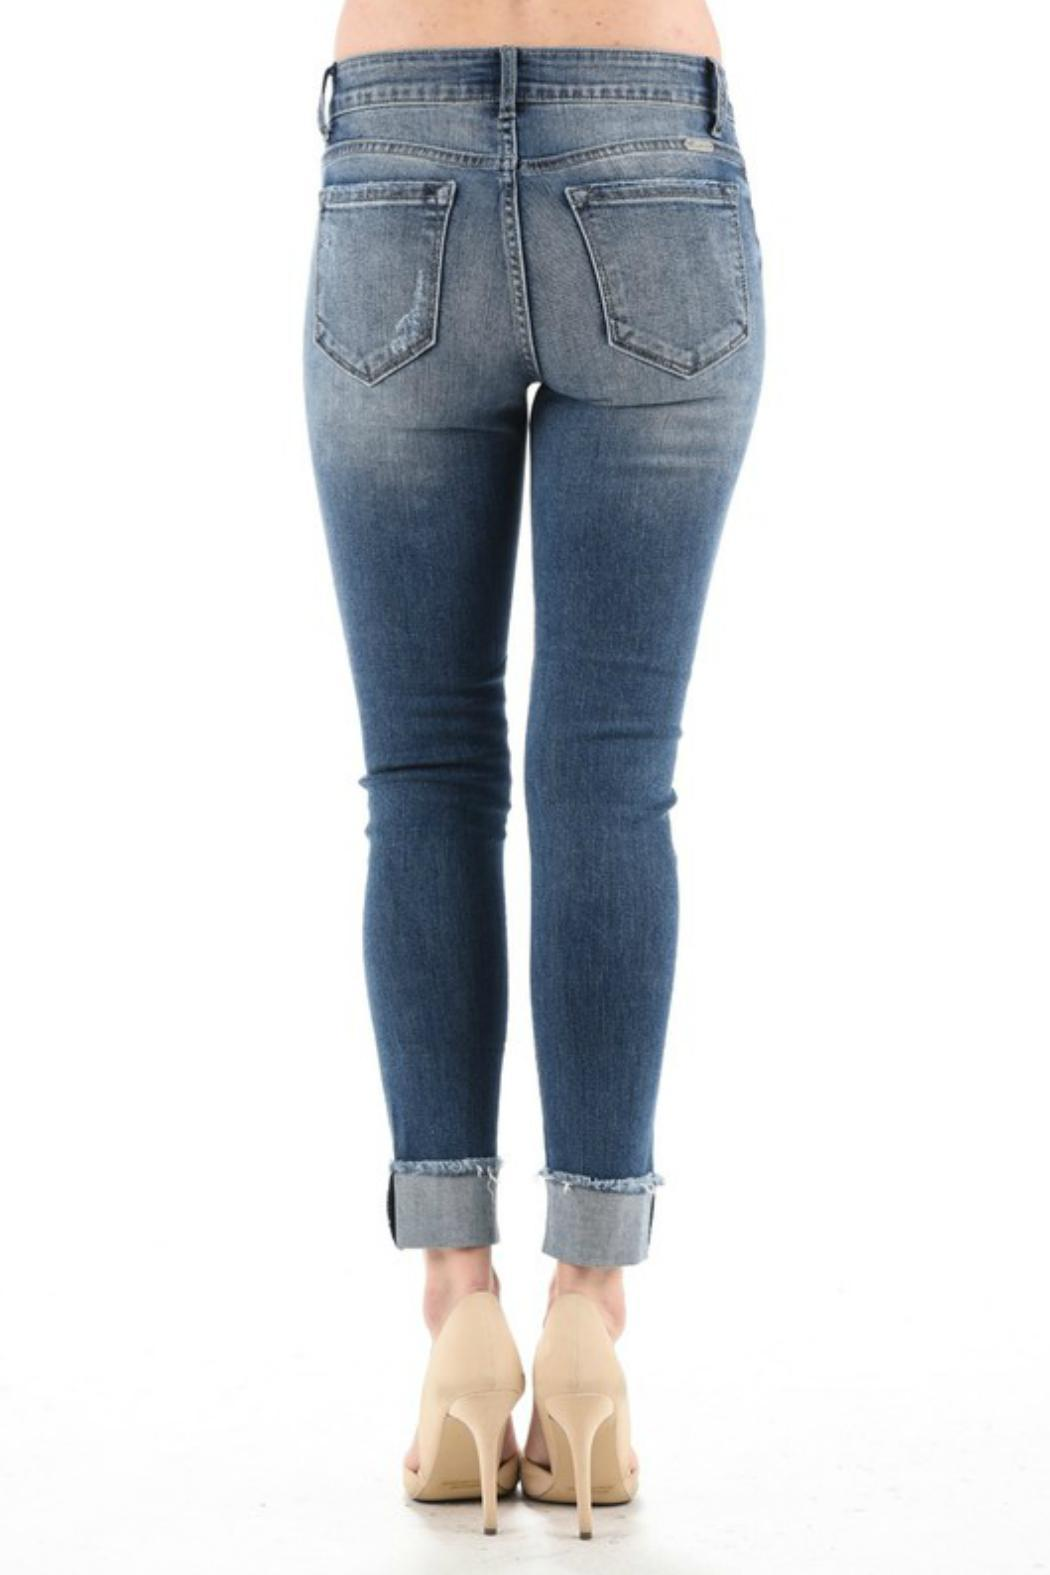 KanCan Cuffed Cropped Jeans - Side Cropped Image